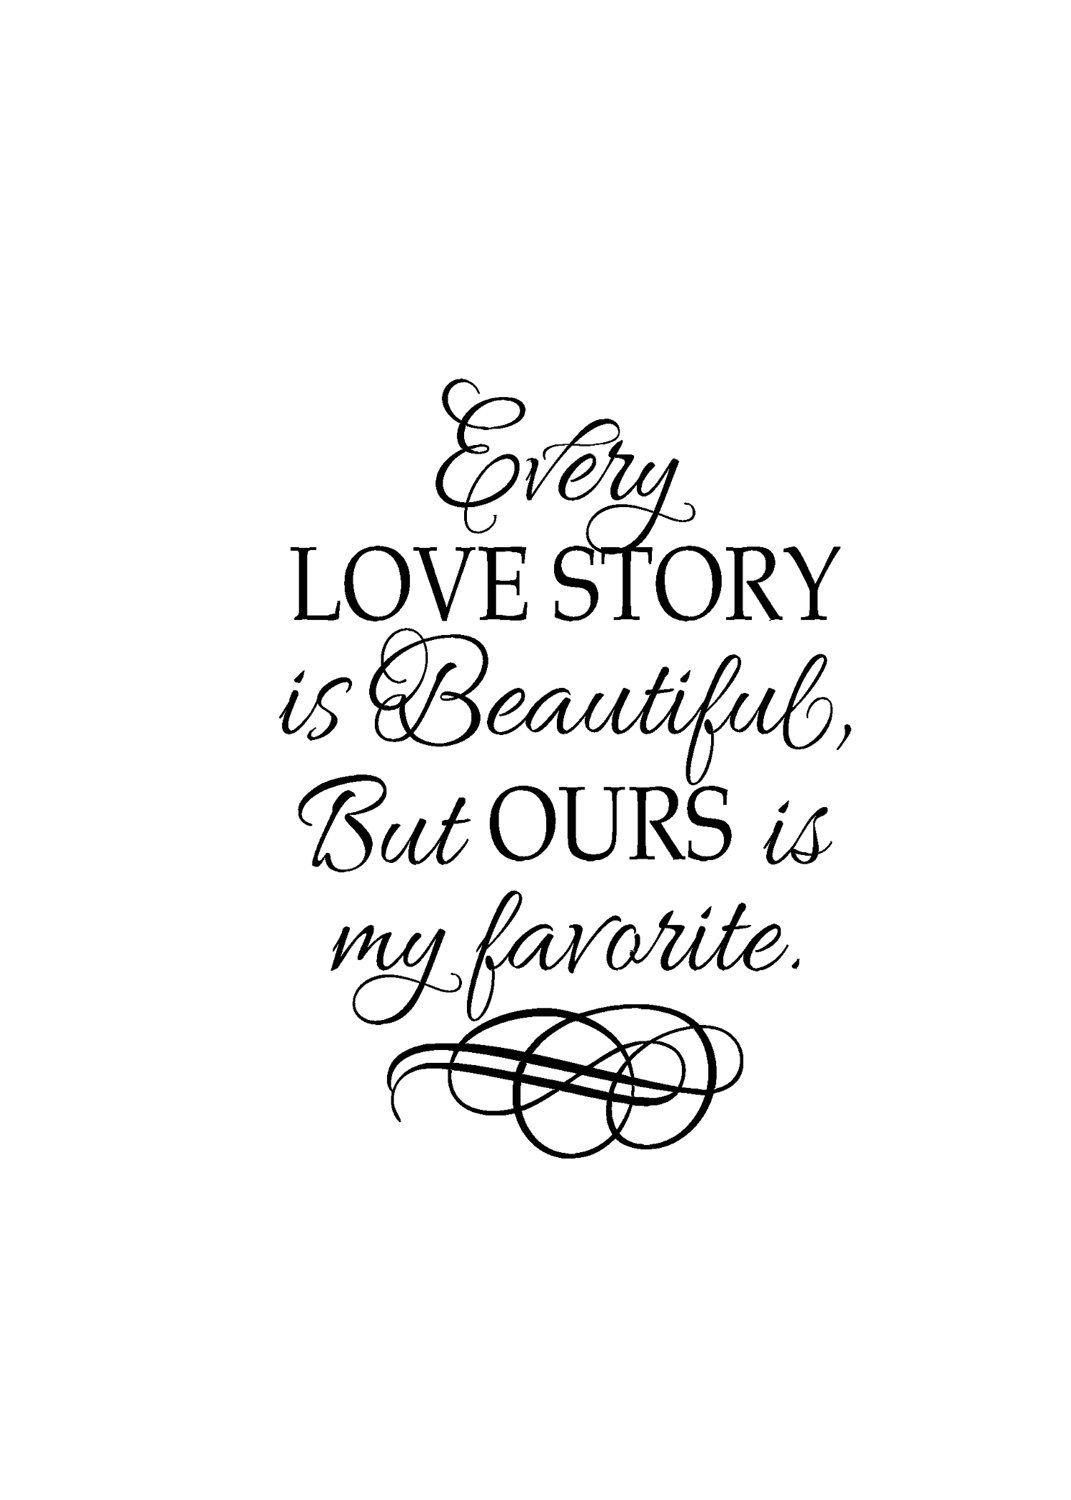 Love Story Quotes Every Love Story Is Beautiful But Ours Is My Favorite  Vinyl Wall